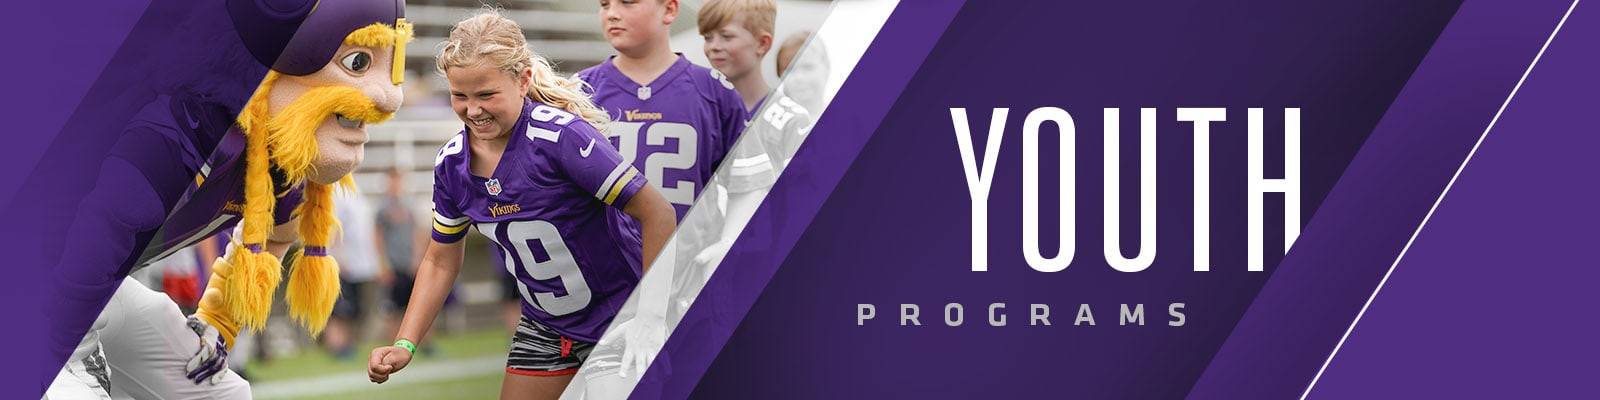 buy popular 6628d 2a76e Vikings Youth Programs | Minnesota Vikings – vikings.com